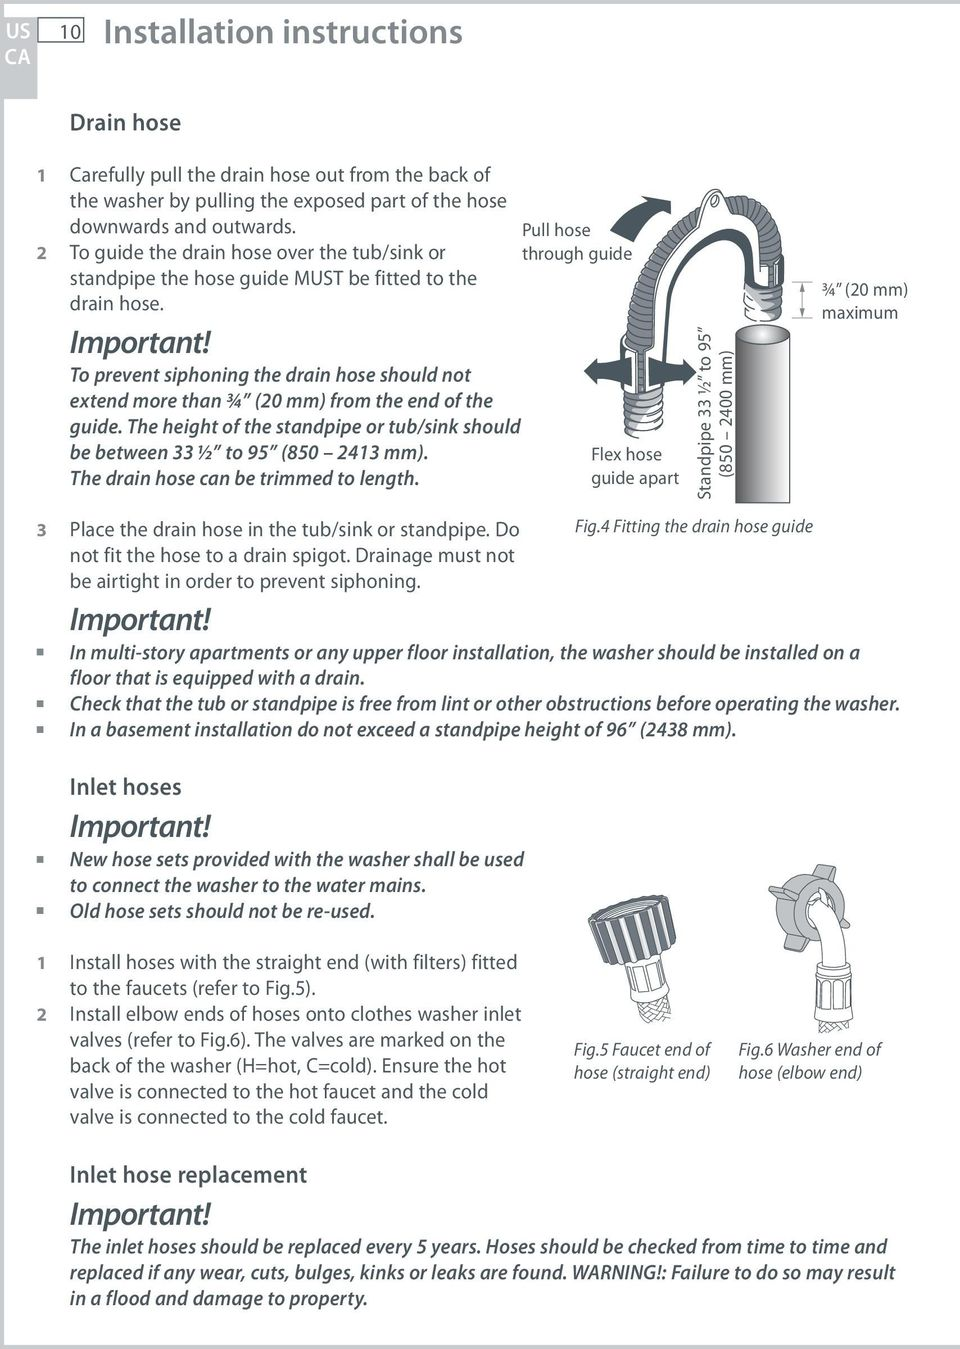 To prevent siphoning the drain hose should not extend more than ¾ (20 mm) from the end of the guide. The height of the standpipe or tub/sink should be between 33 ½ to 95 (850 2413 mm).